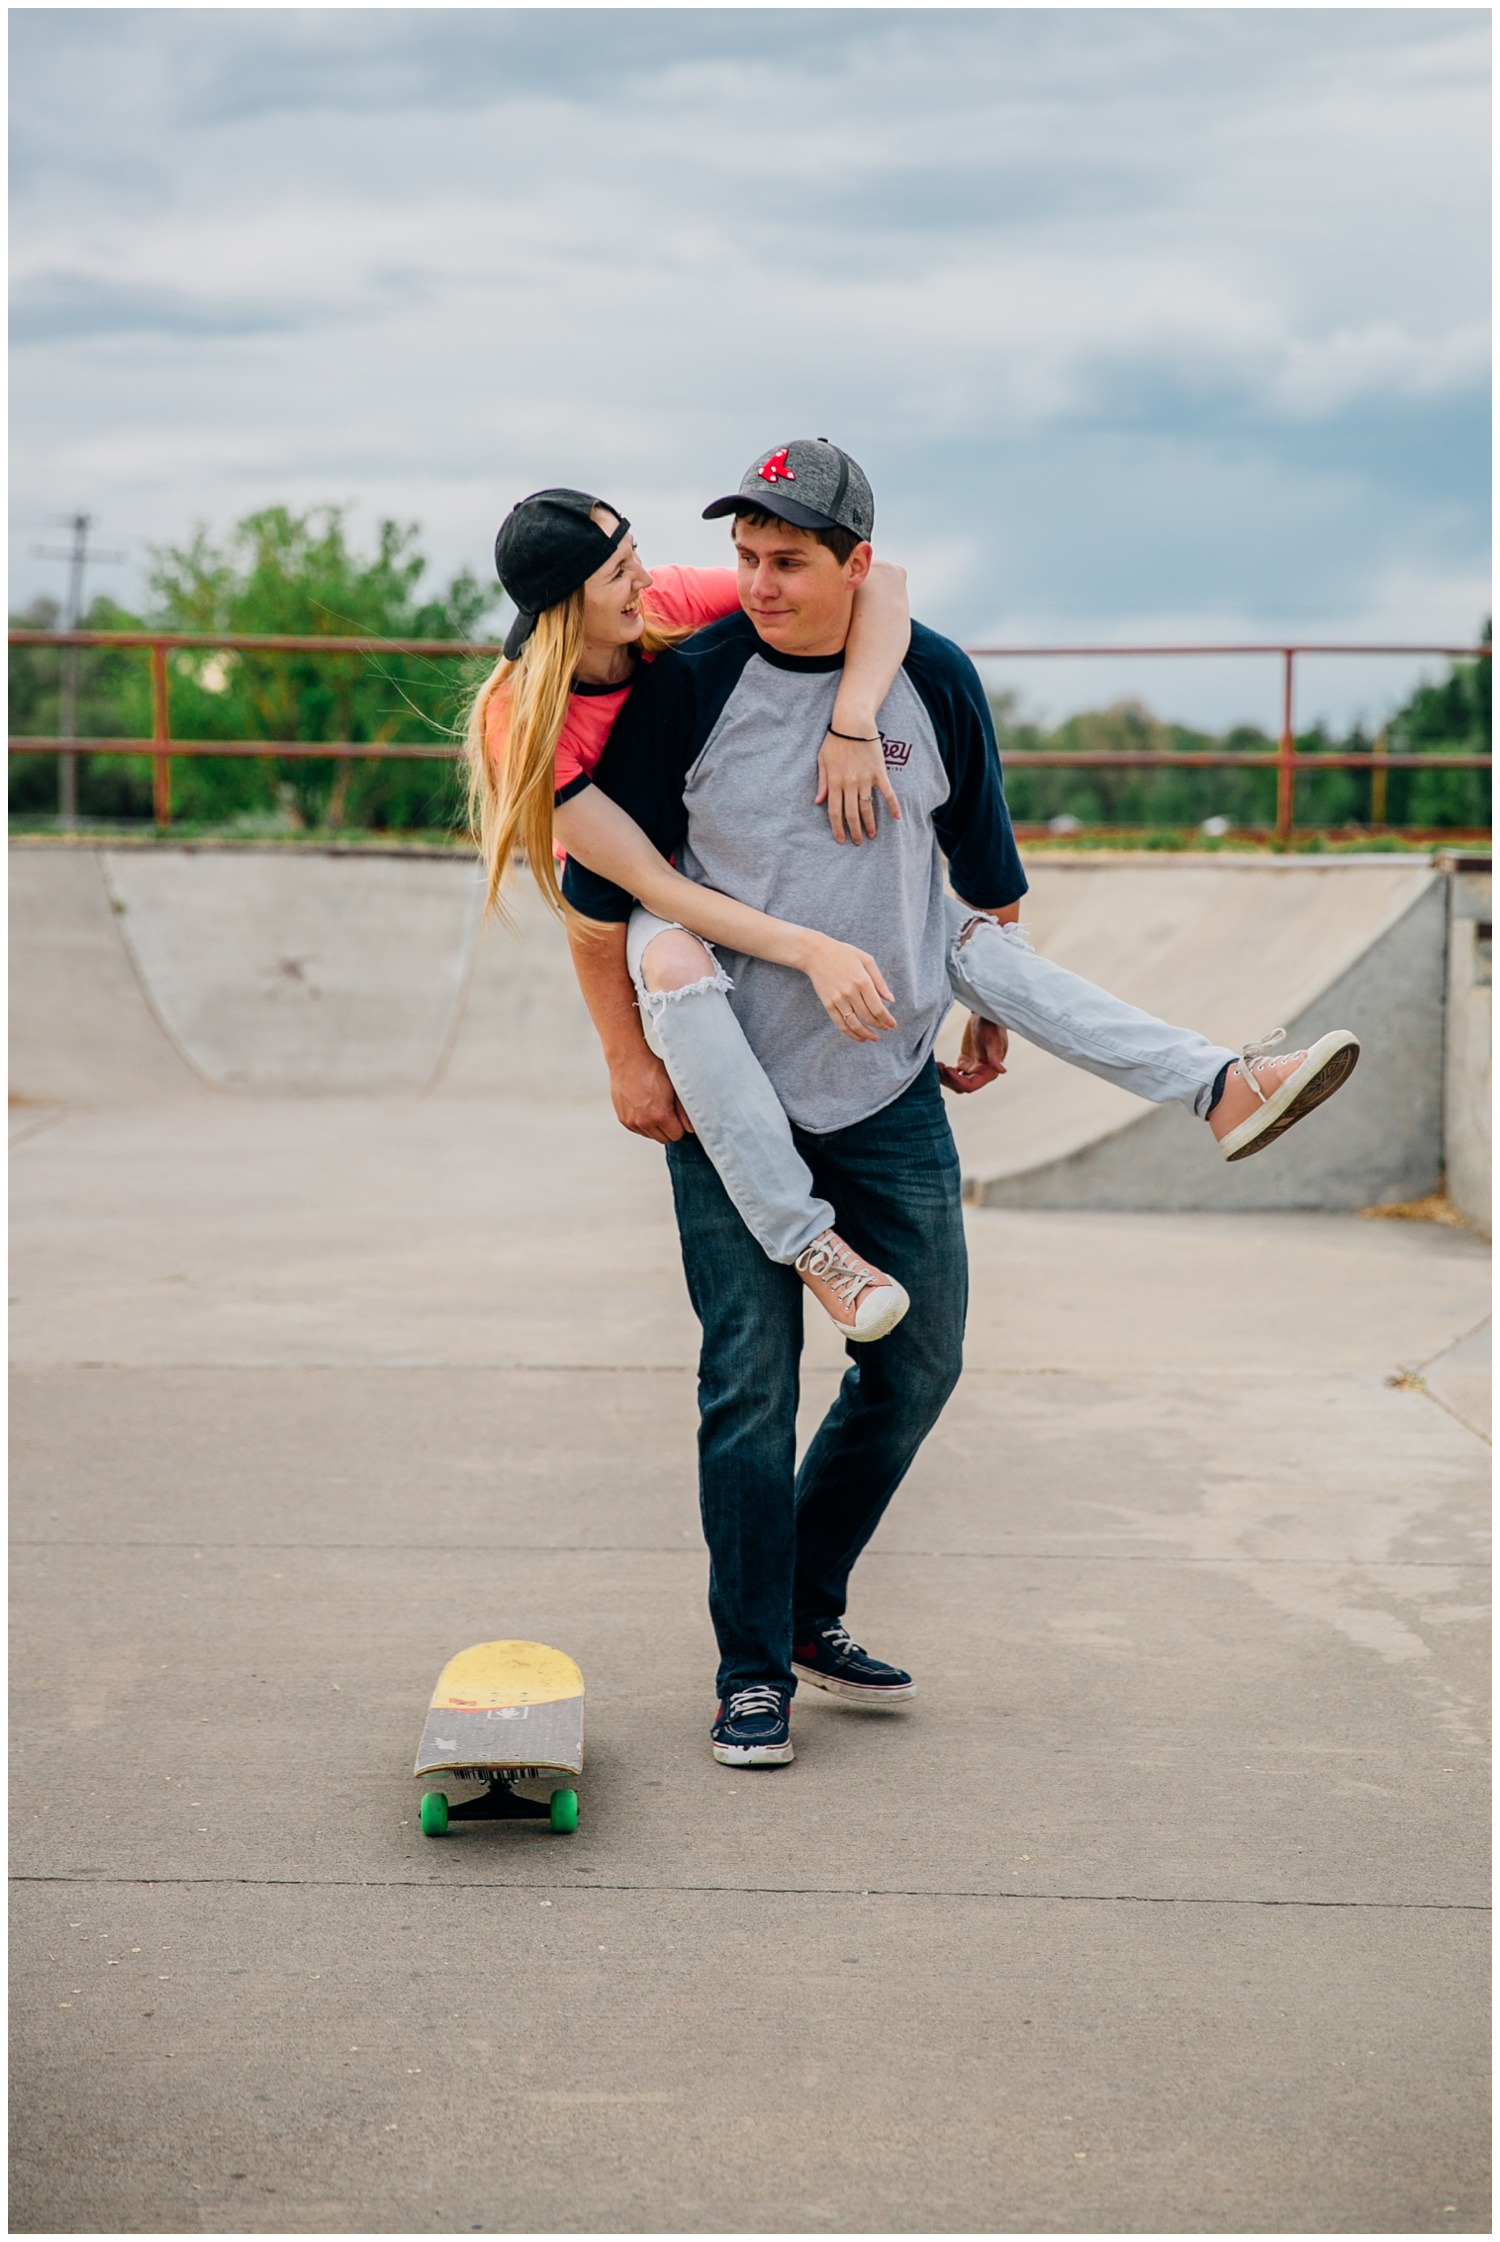 skatepark-engagements-skater-couple-rigby-idaho-wedding-photographer_2067.jpg